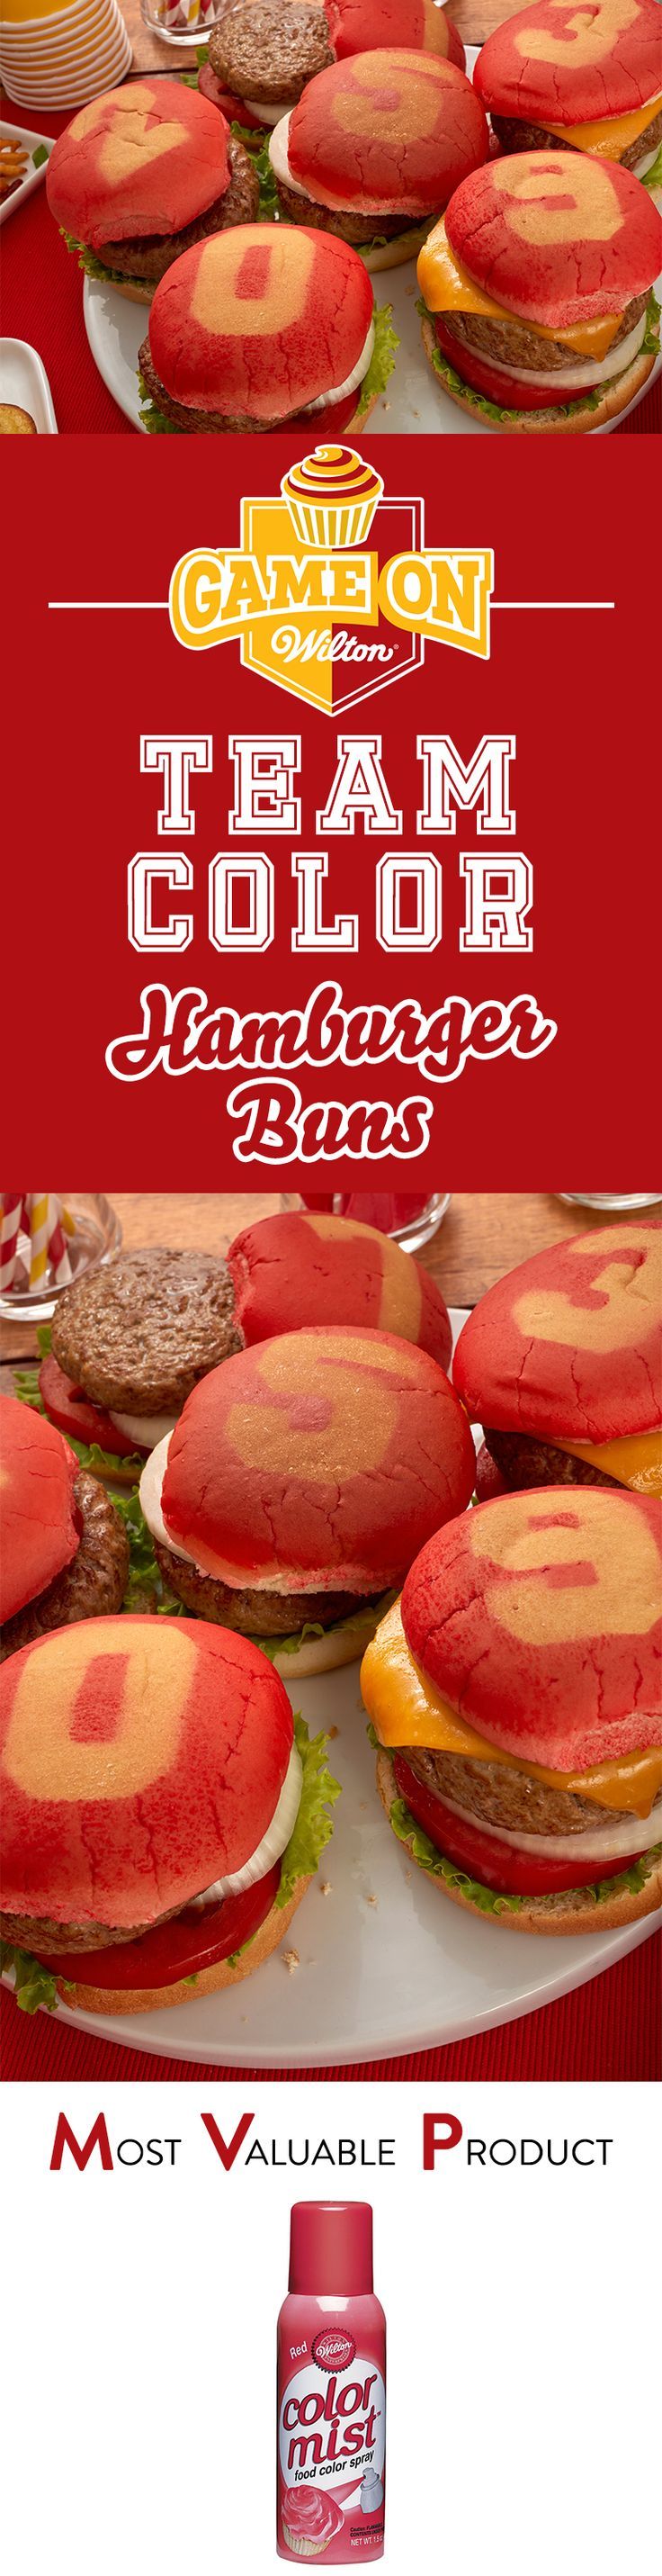 Impress your home team at any barbeque, tailgate, cookout or football party! Color your hamburger buns in your favorite team colors and numbers using Wilton Color Mist.